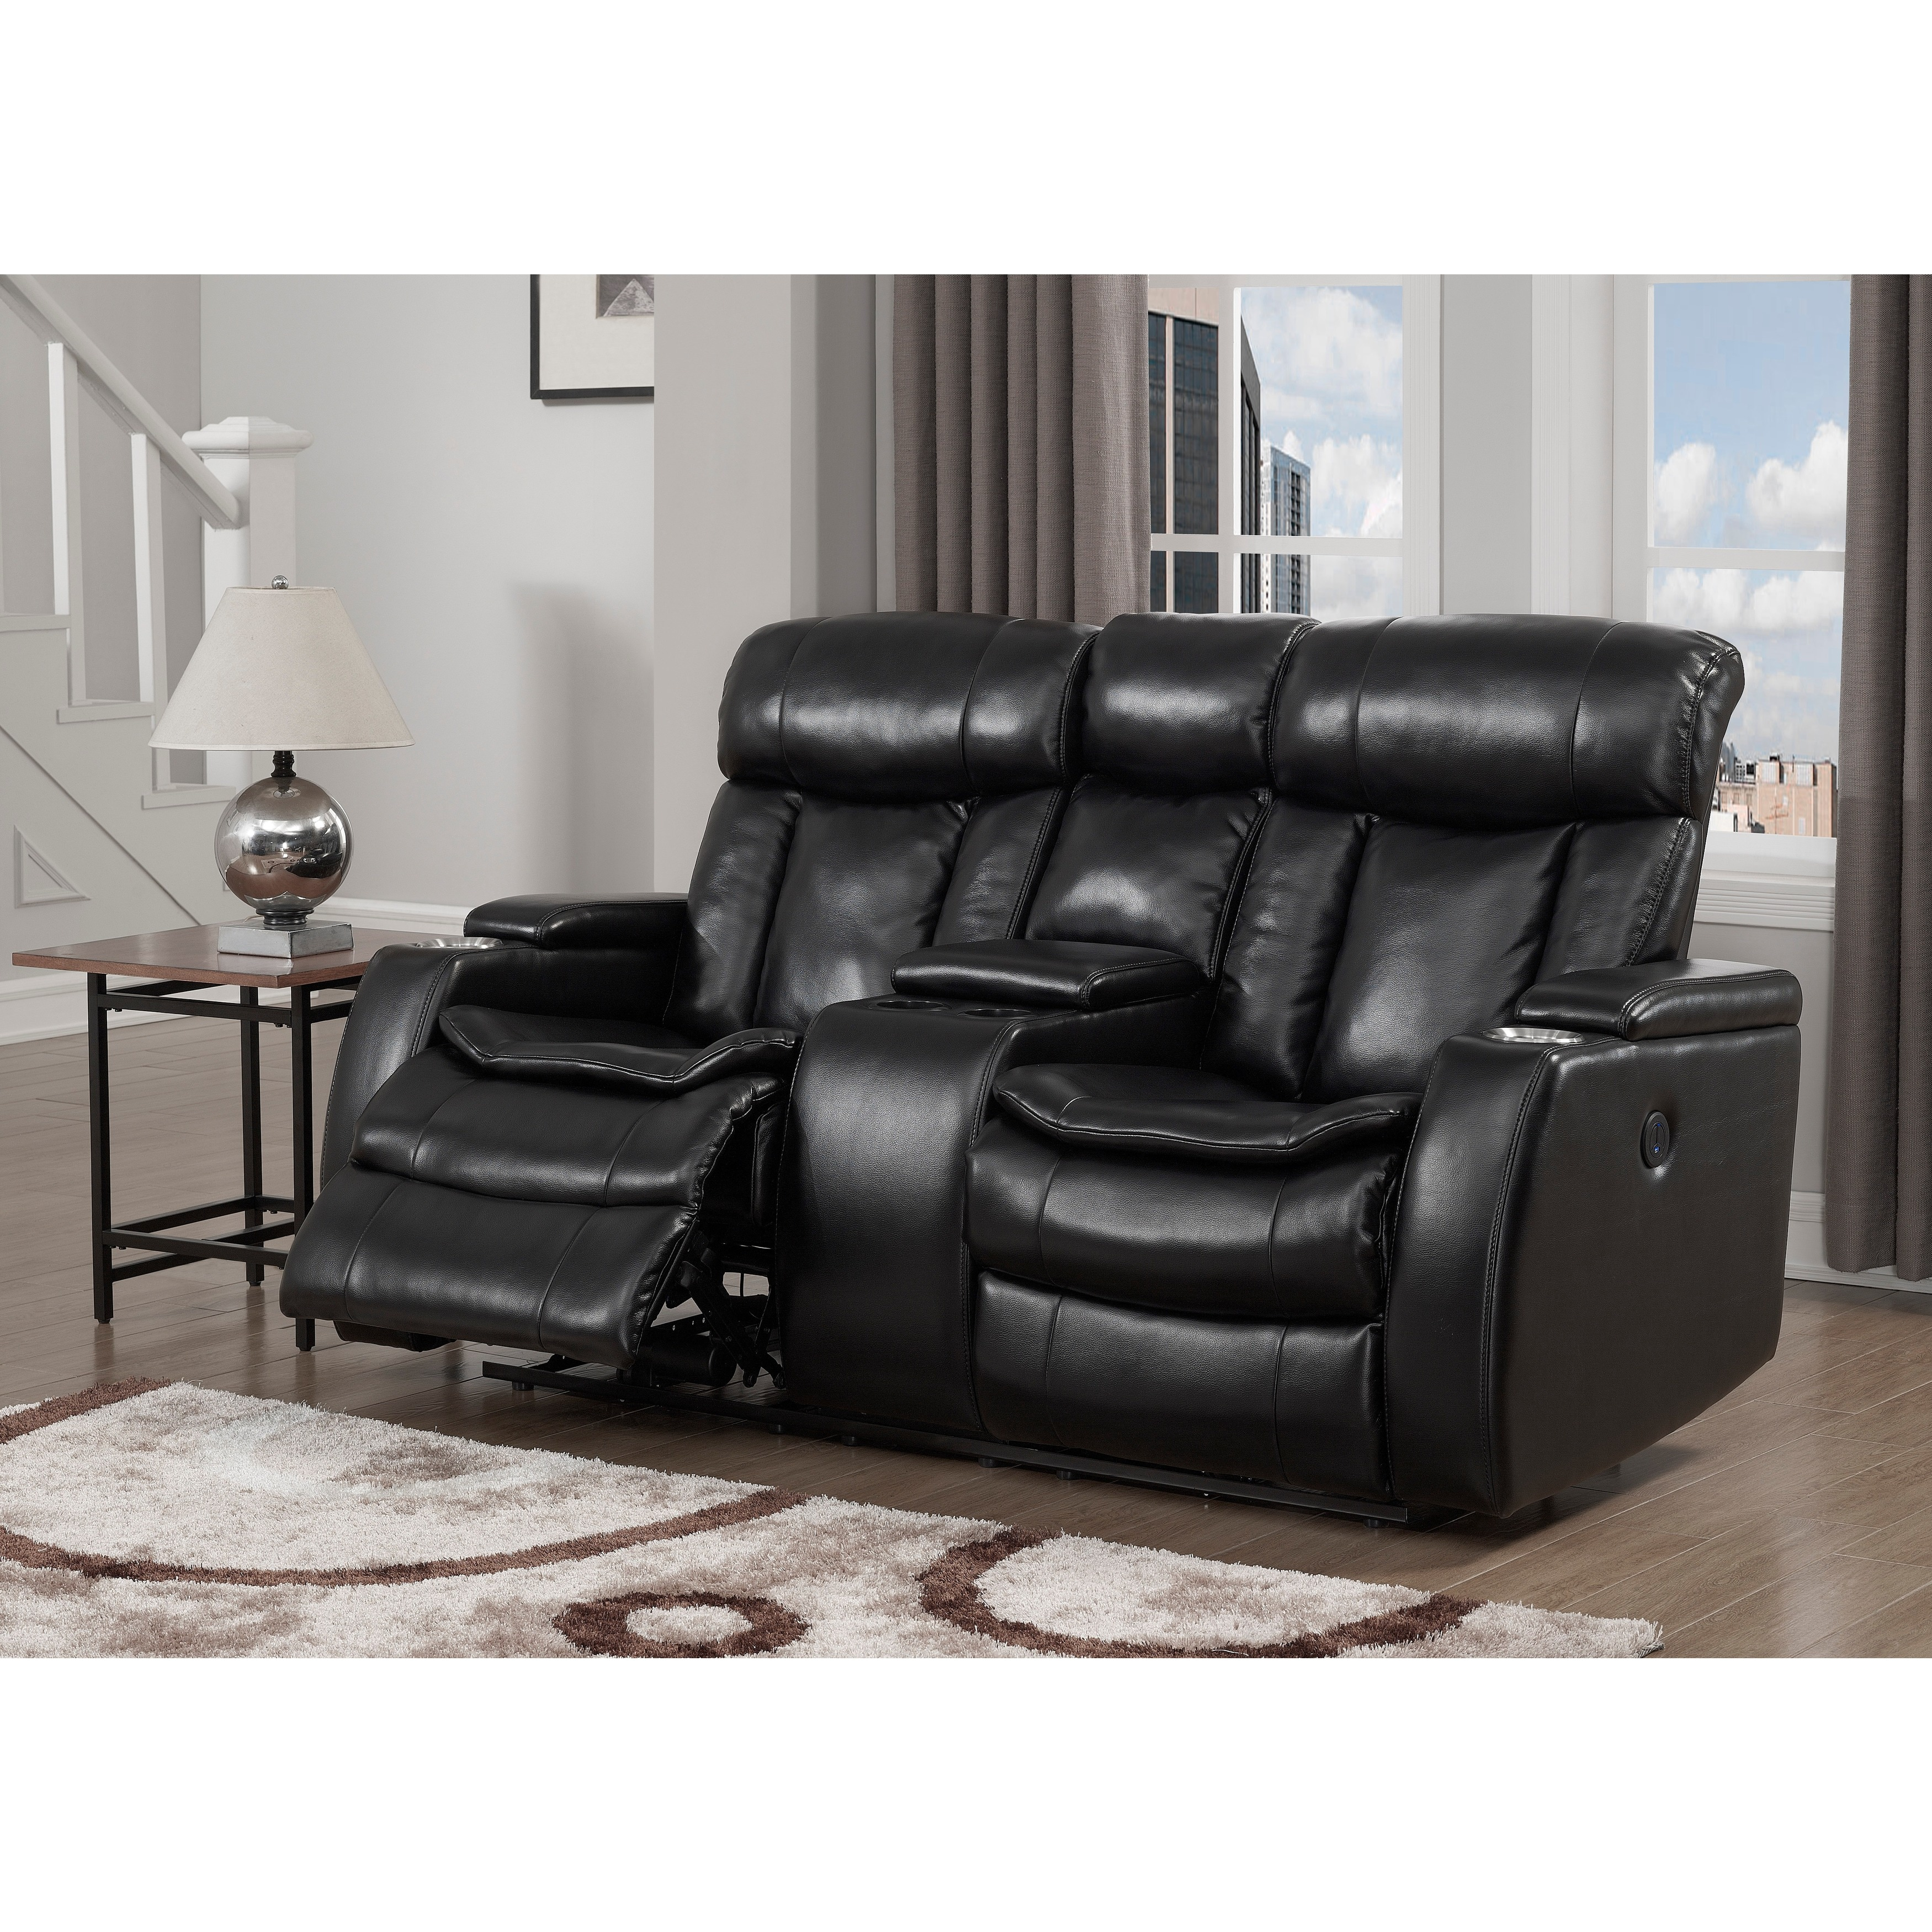 Admirable Black Power Recliner Loveseat With Usb Gamerscity Chair Design For Home Gamerscityorg